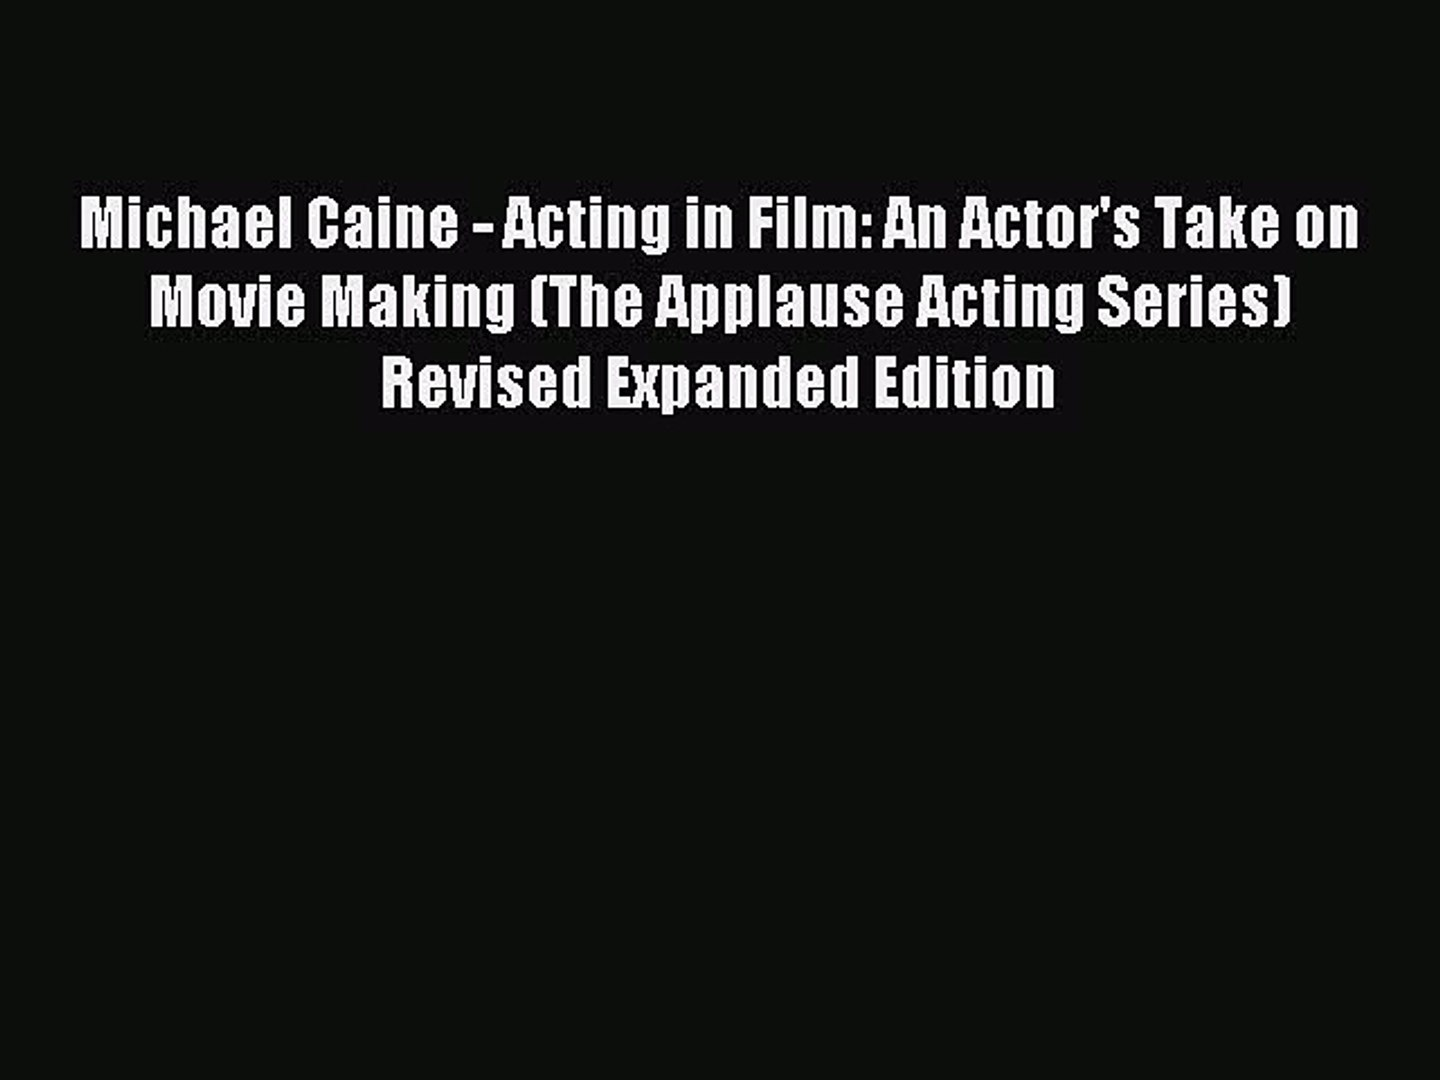 [Download] Michael Caine - Acting in Film: An Actor's Take on Movie Making (The Applause